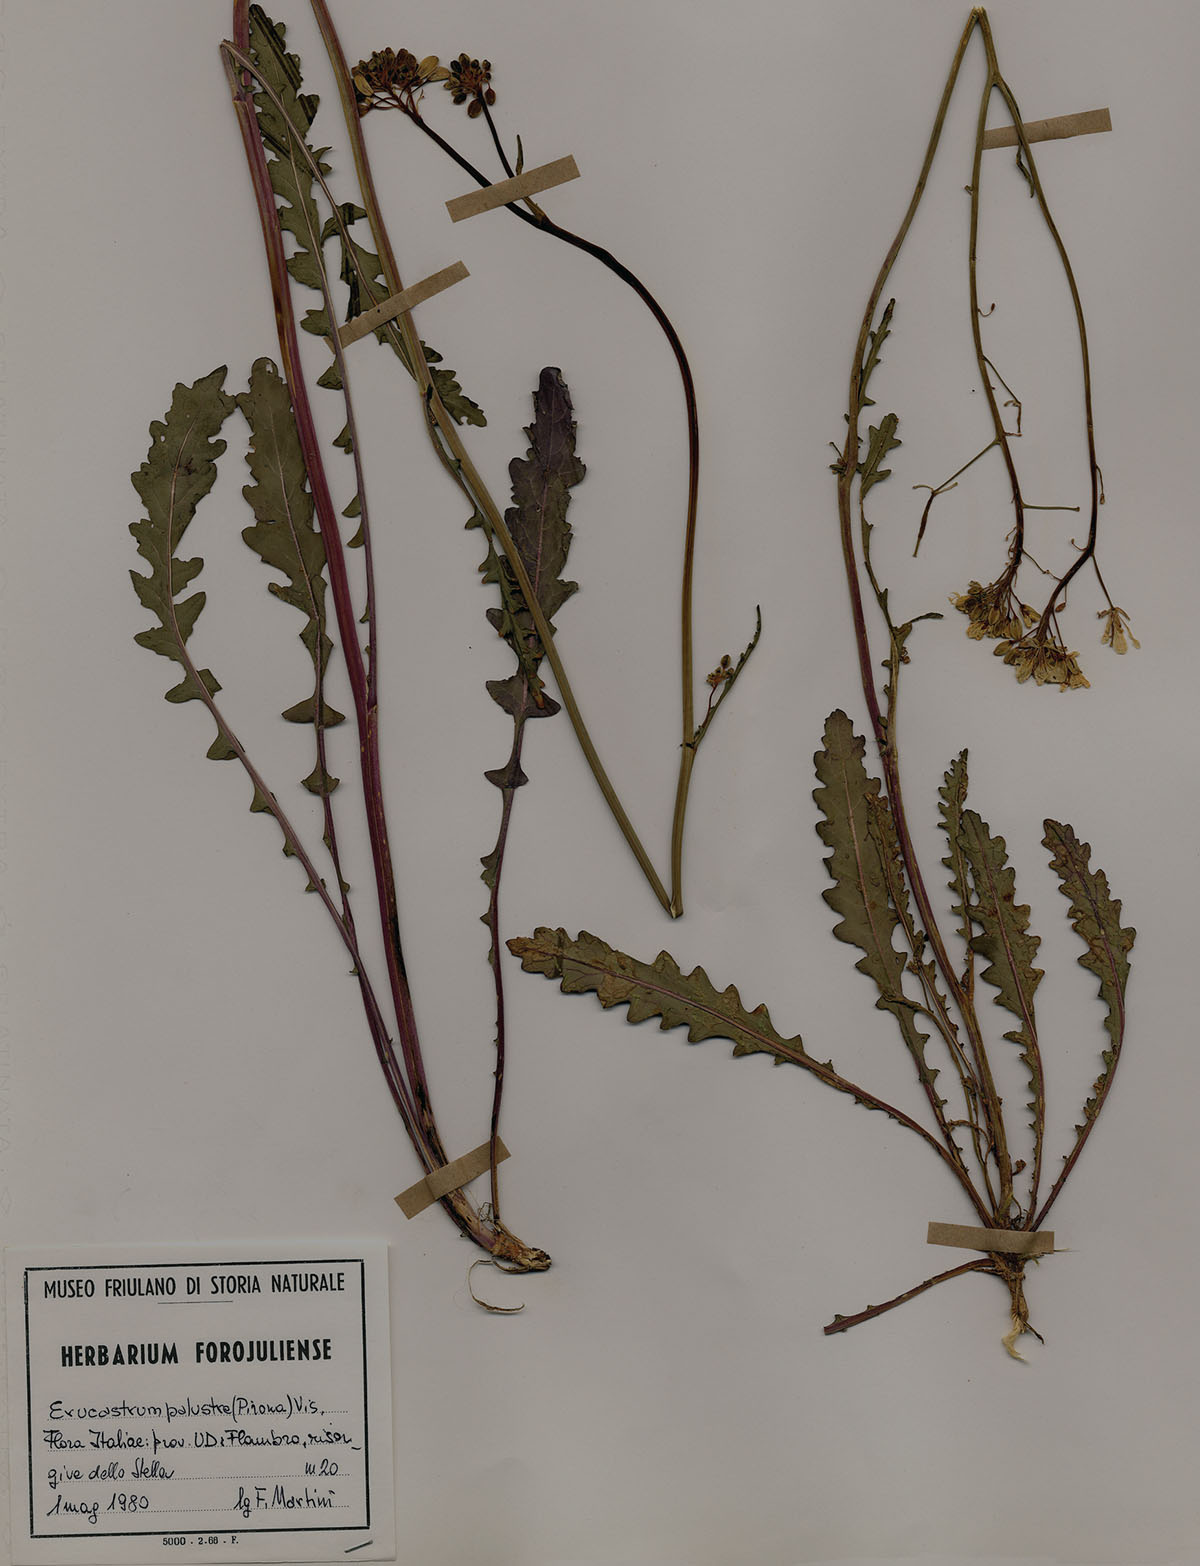 Erucastrum palustre - Herbarium leaf with Erucastrum, endemic plant of Friuli